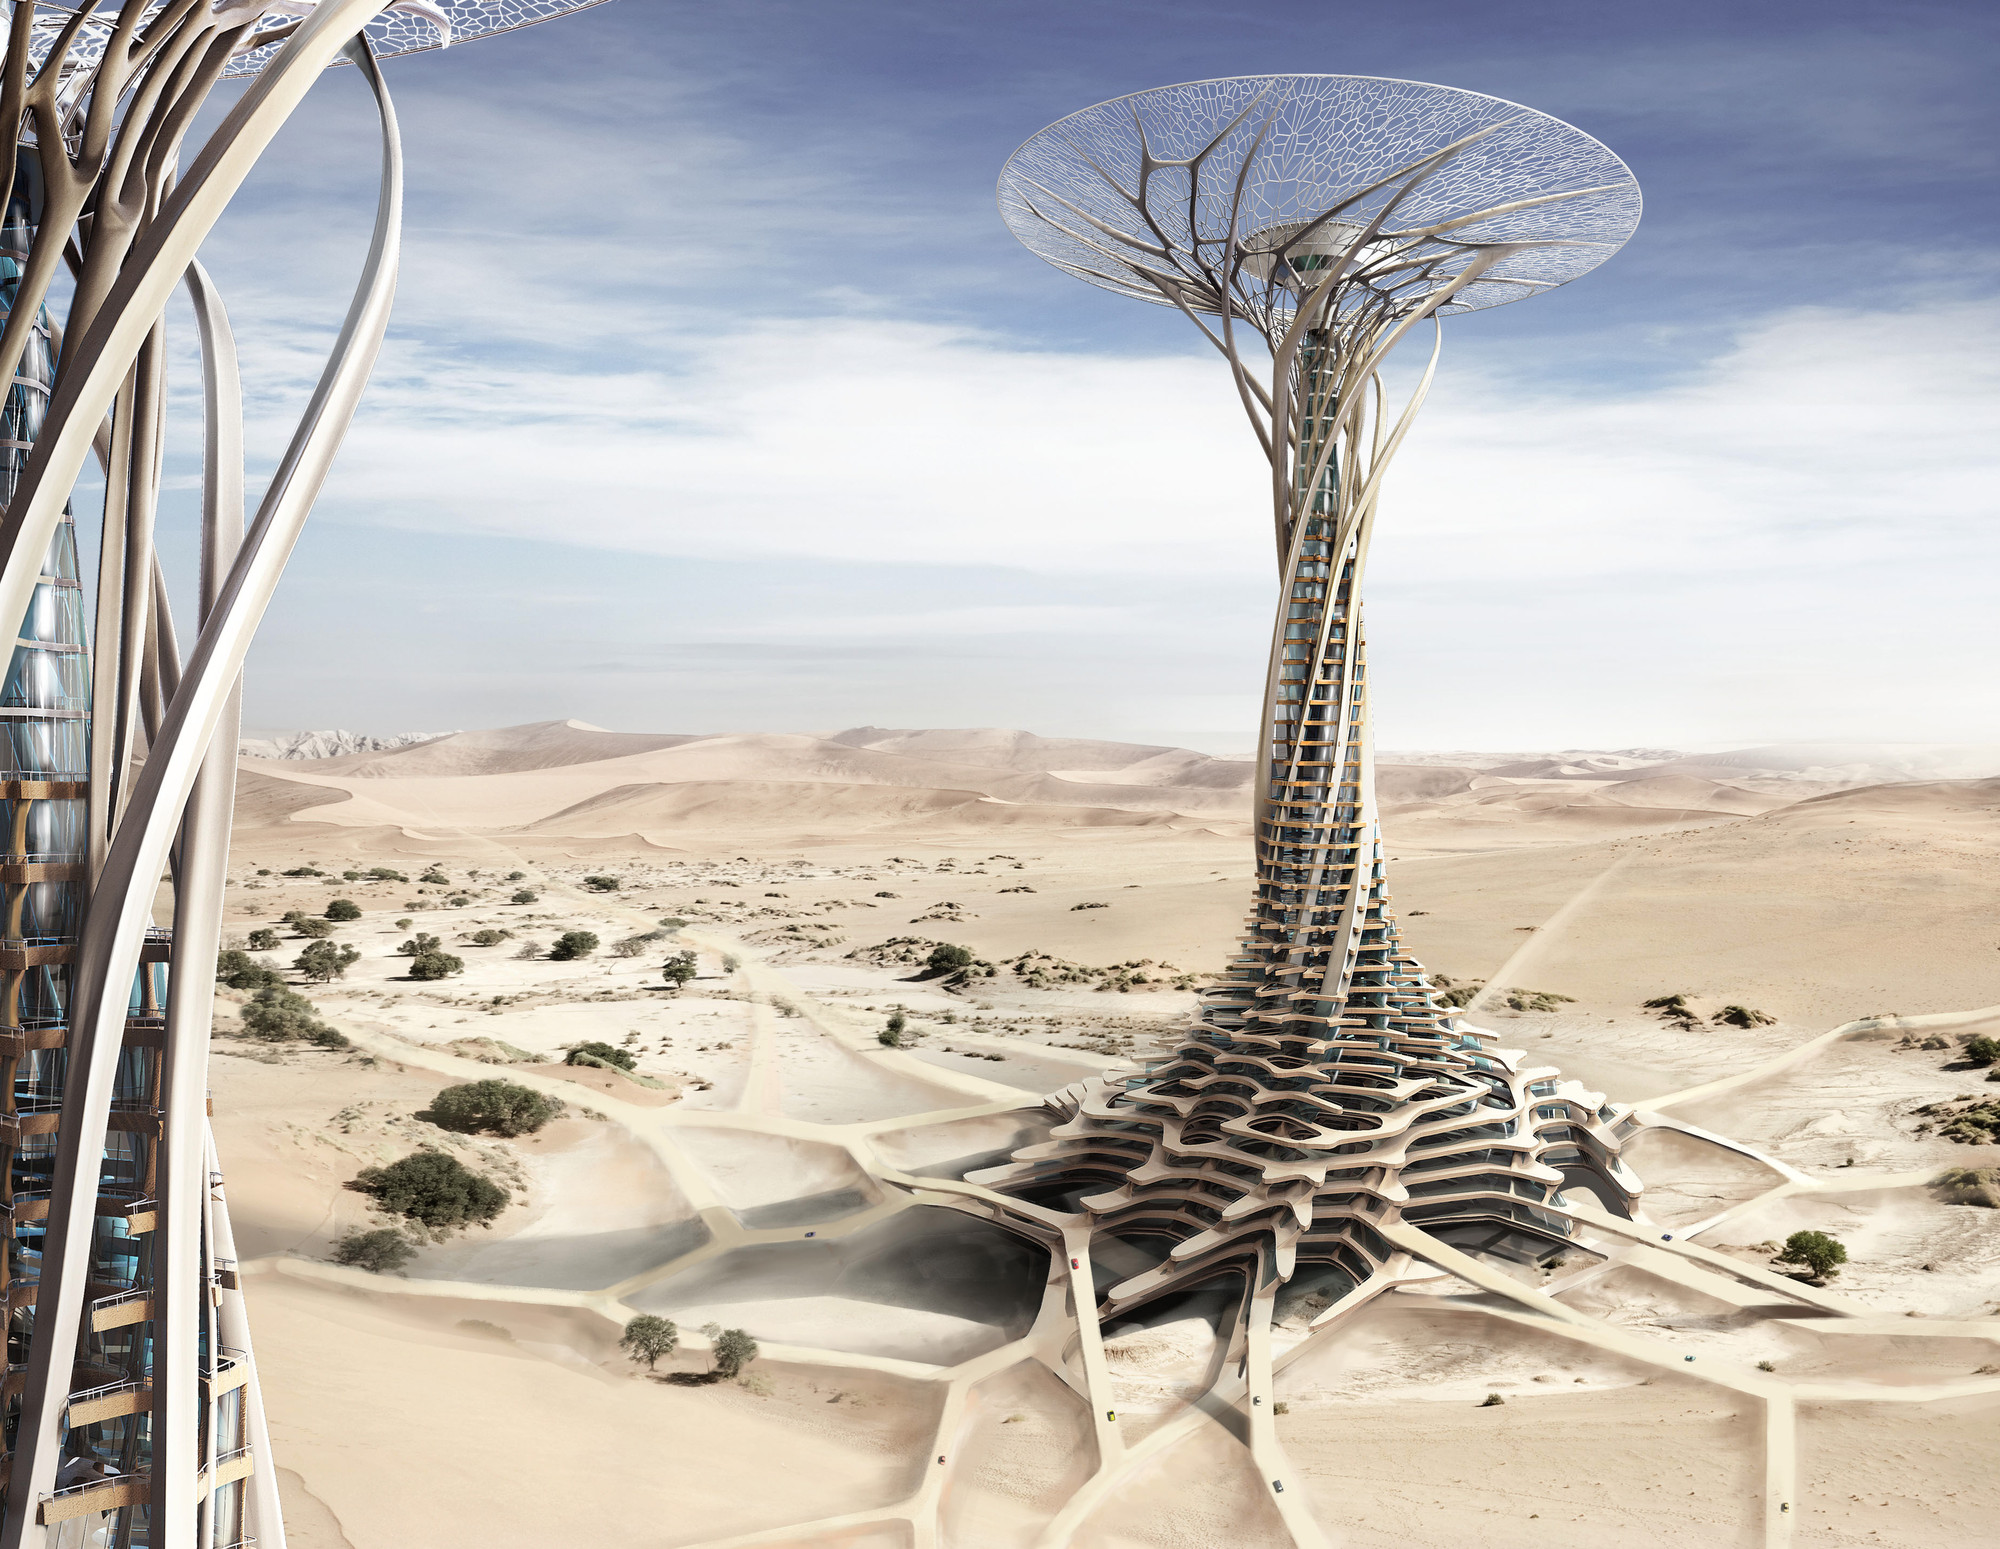 "Honorable Mention: ""Sand Babel: Solar-Powered 3D Printed Tower"" / Qiu Song, Kang Pengfei, Bai Ying, Ren Nuoya, Guo Shen (China). Image Courtesy of eVolo"